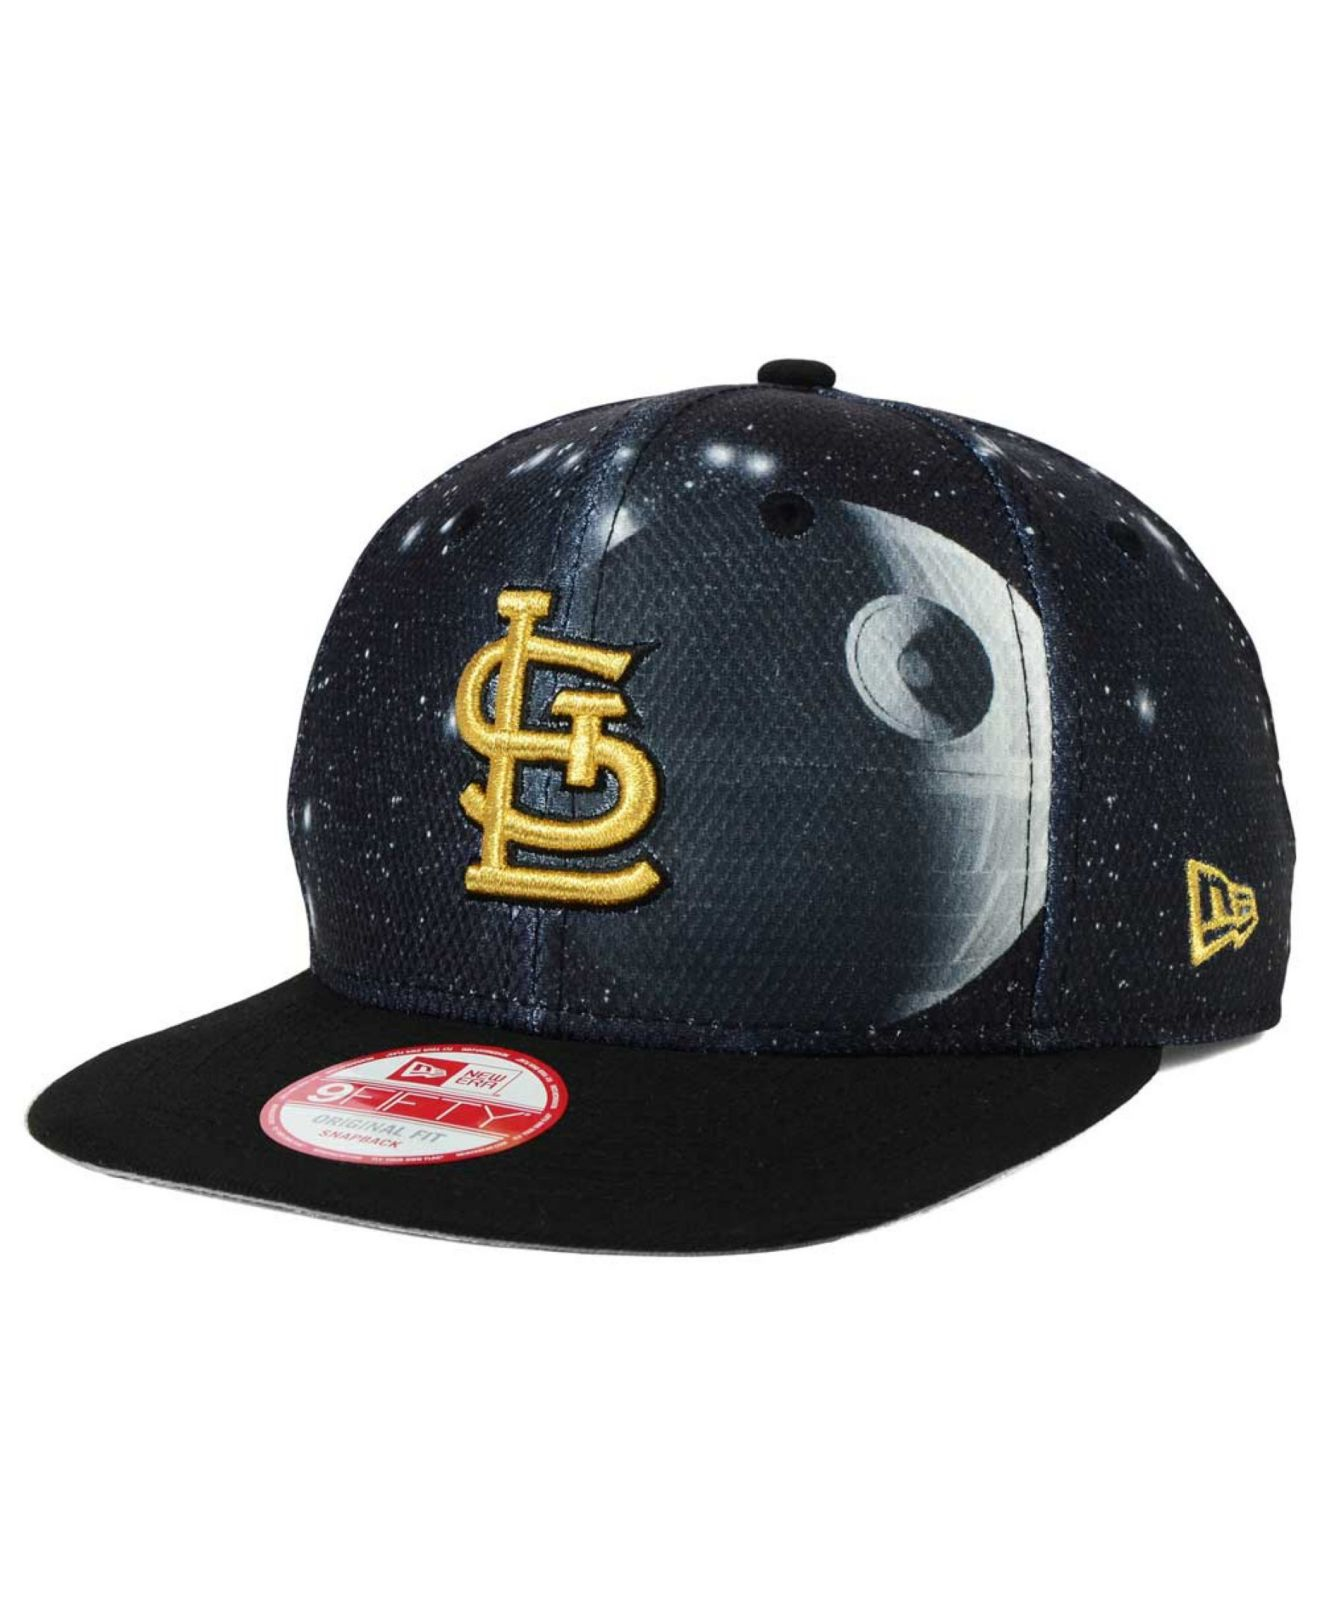 18f0a7ababa ... spain lyst ktz st. louis cardinals sw x mlb 9fifty snapback cap in  black 198ad